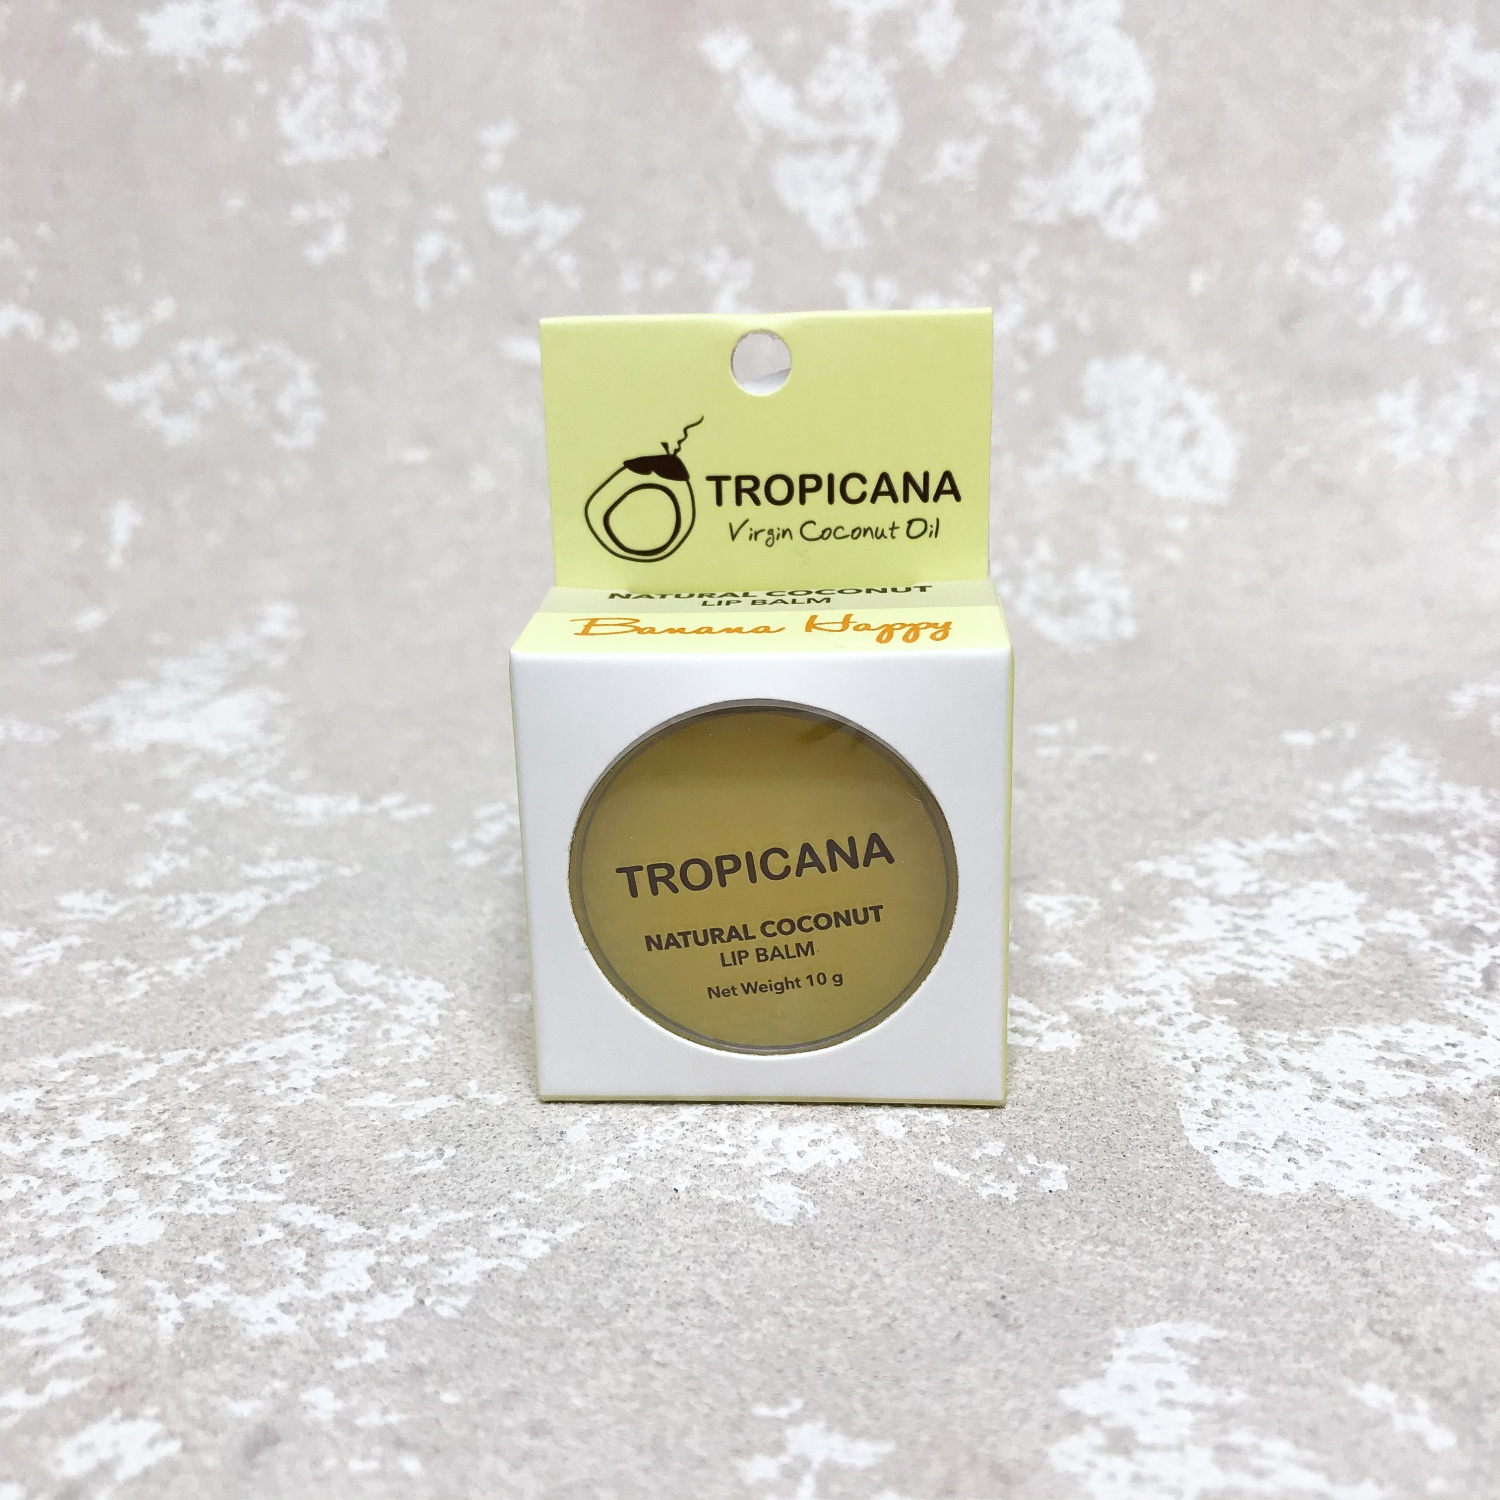 Tropicana Natural coconut oil Banana